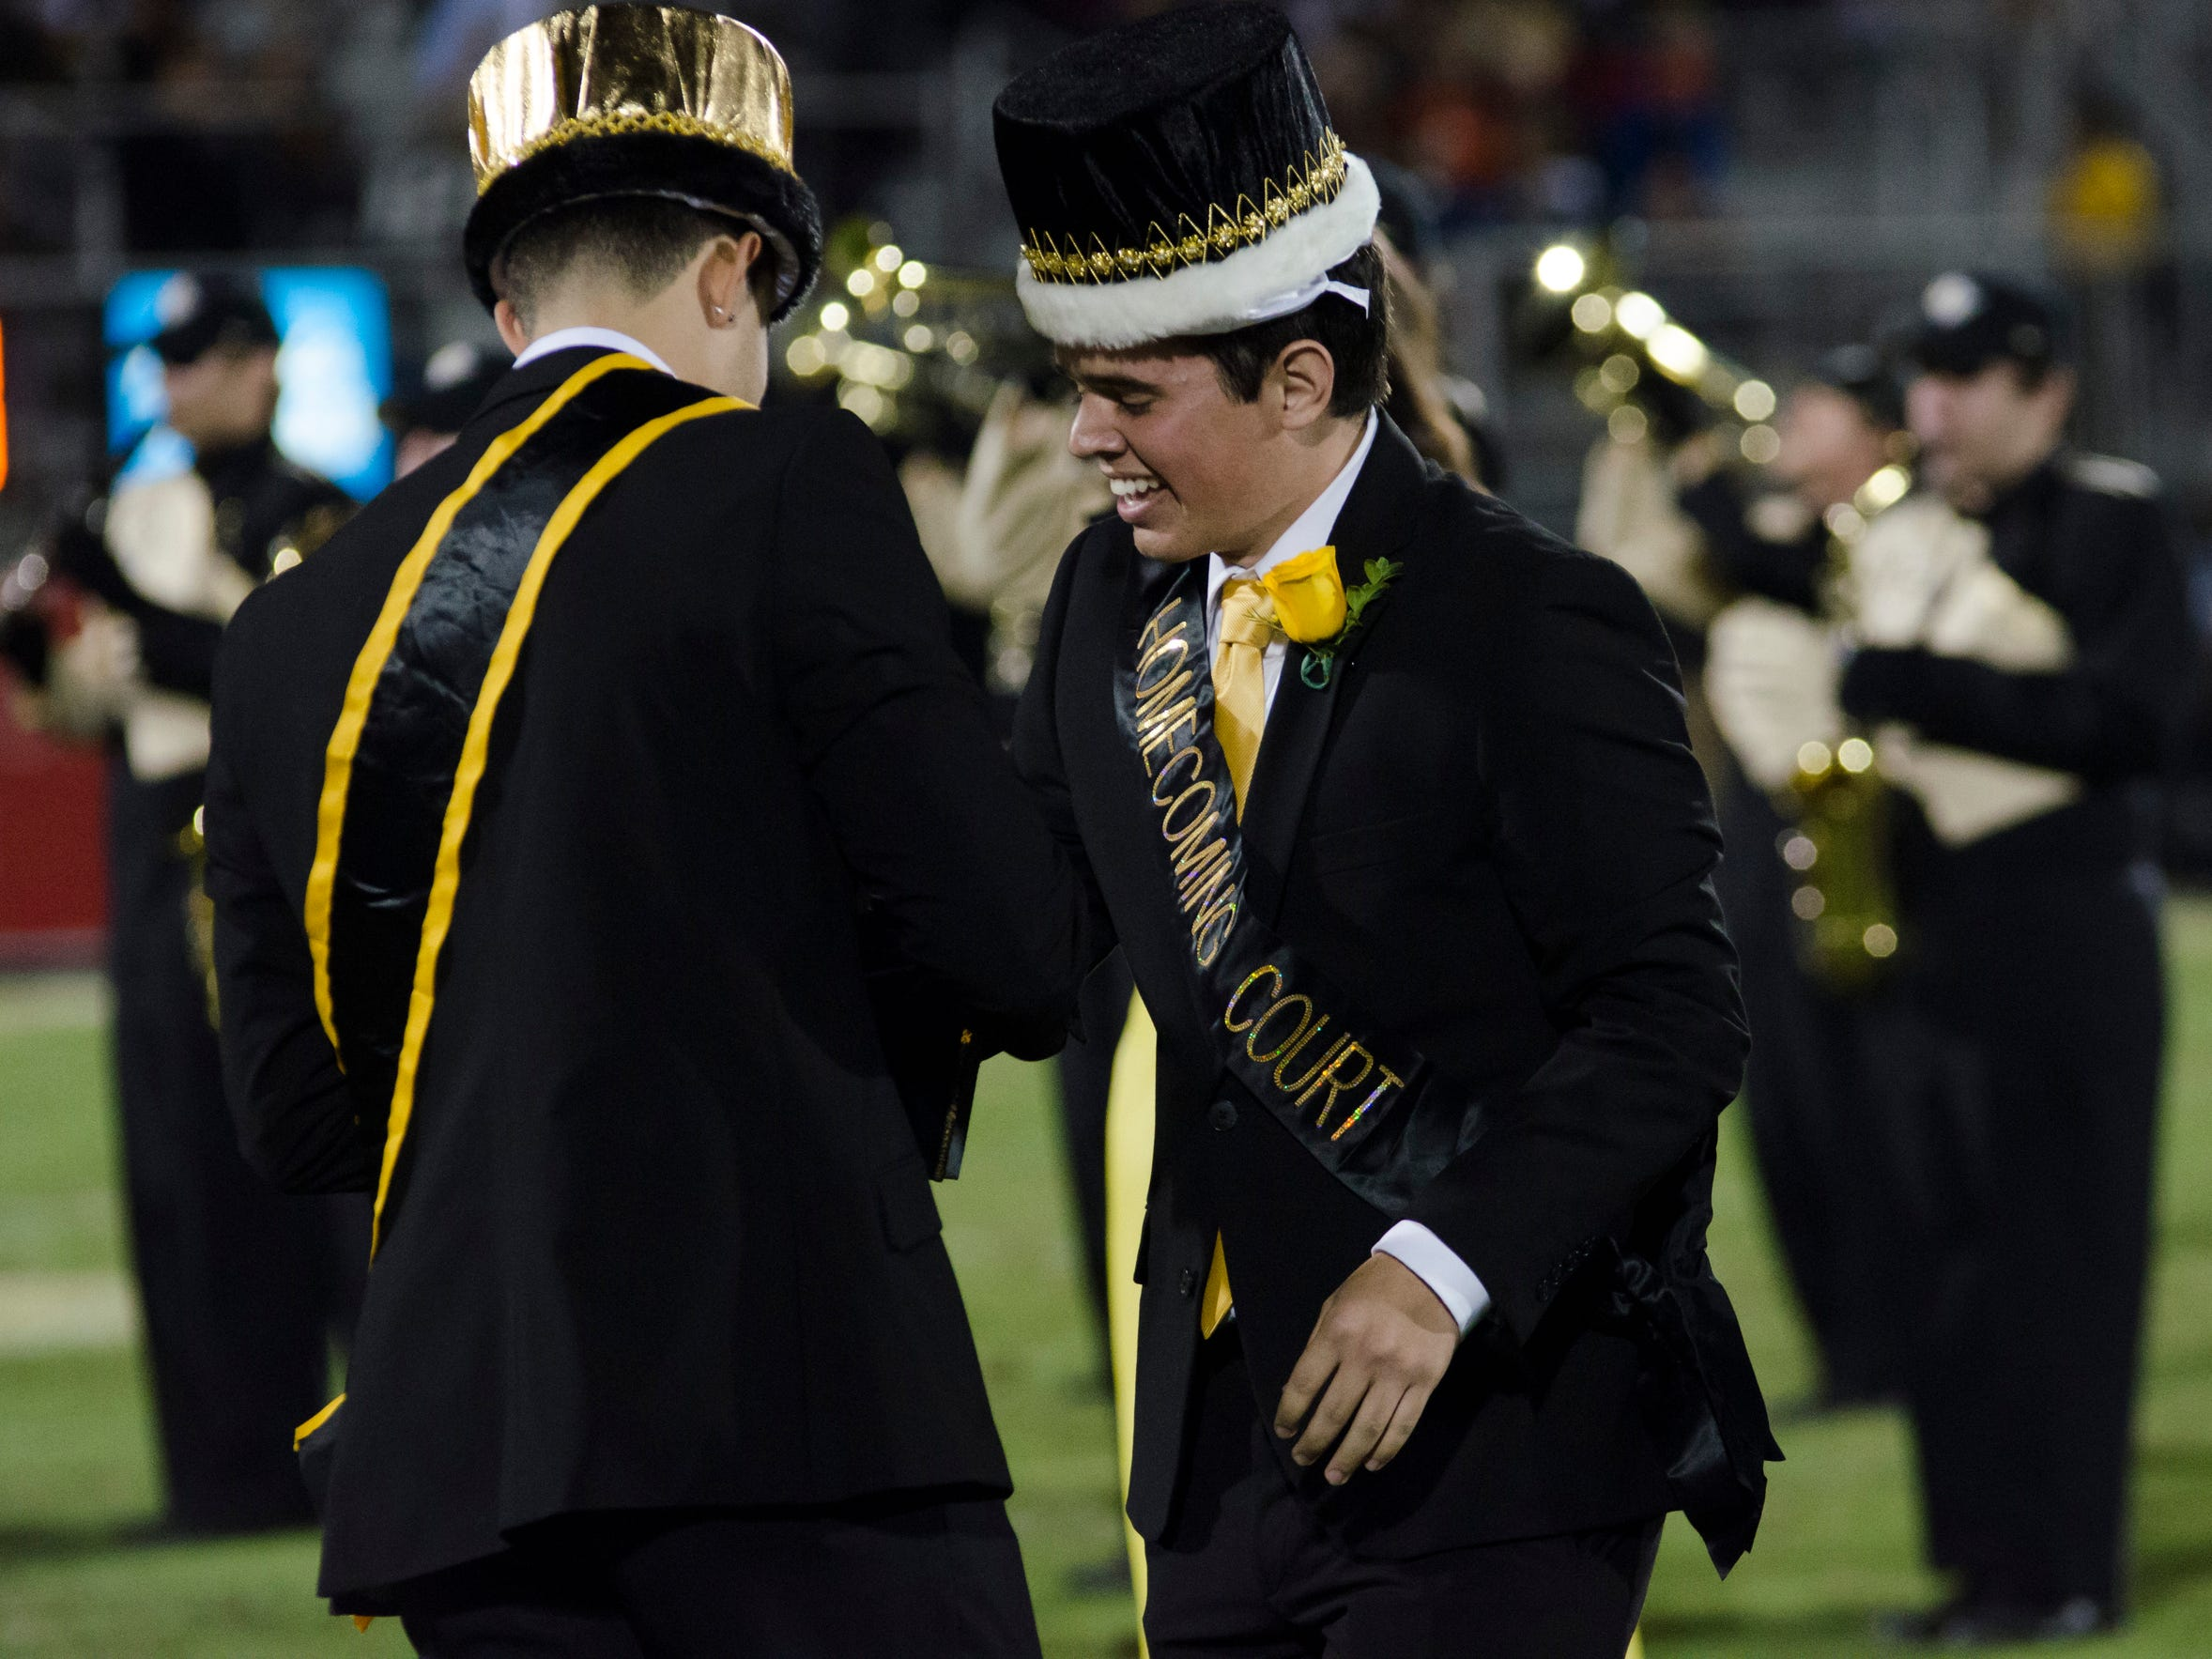 112113_Homecoming King and Queen_Leyva3.jpg